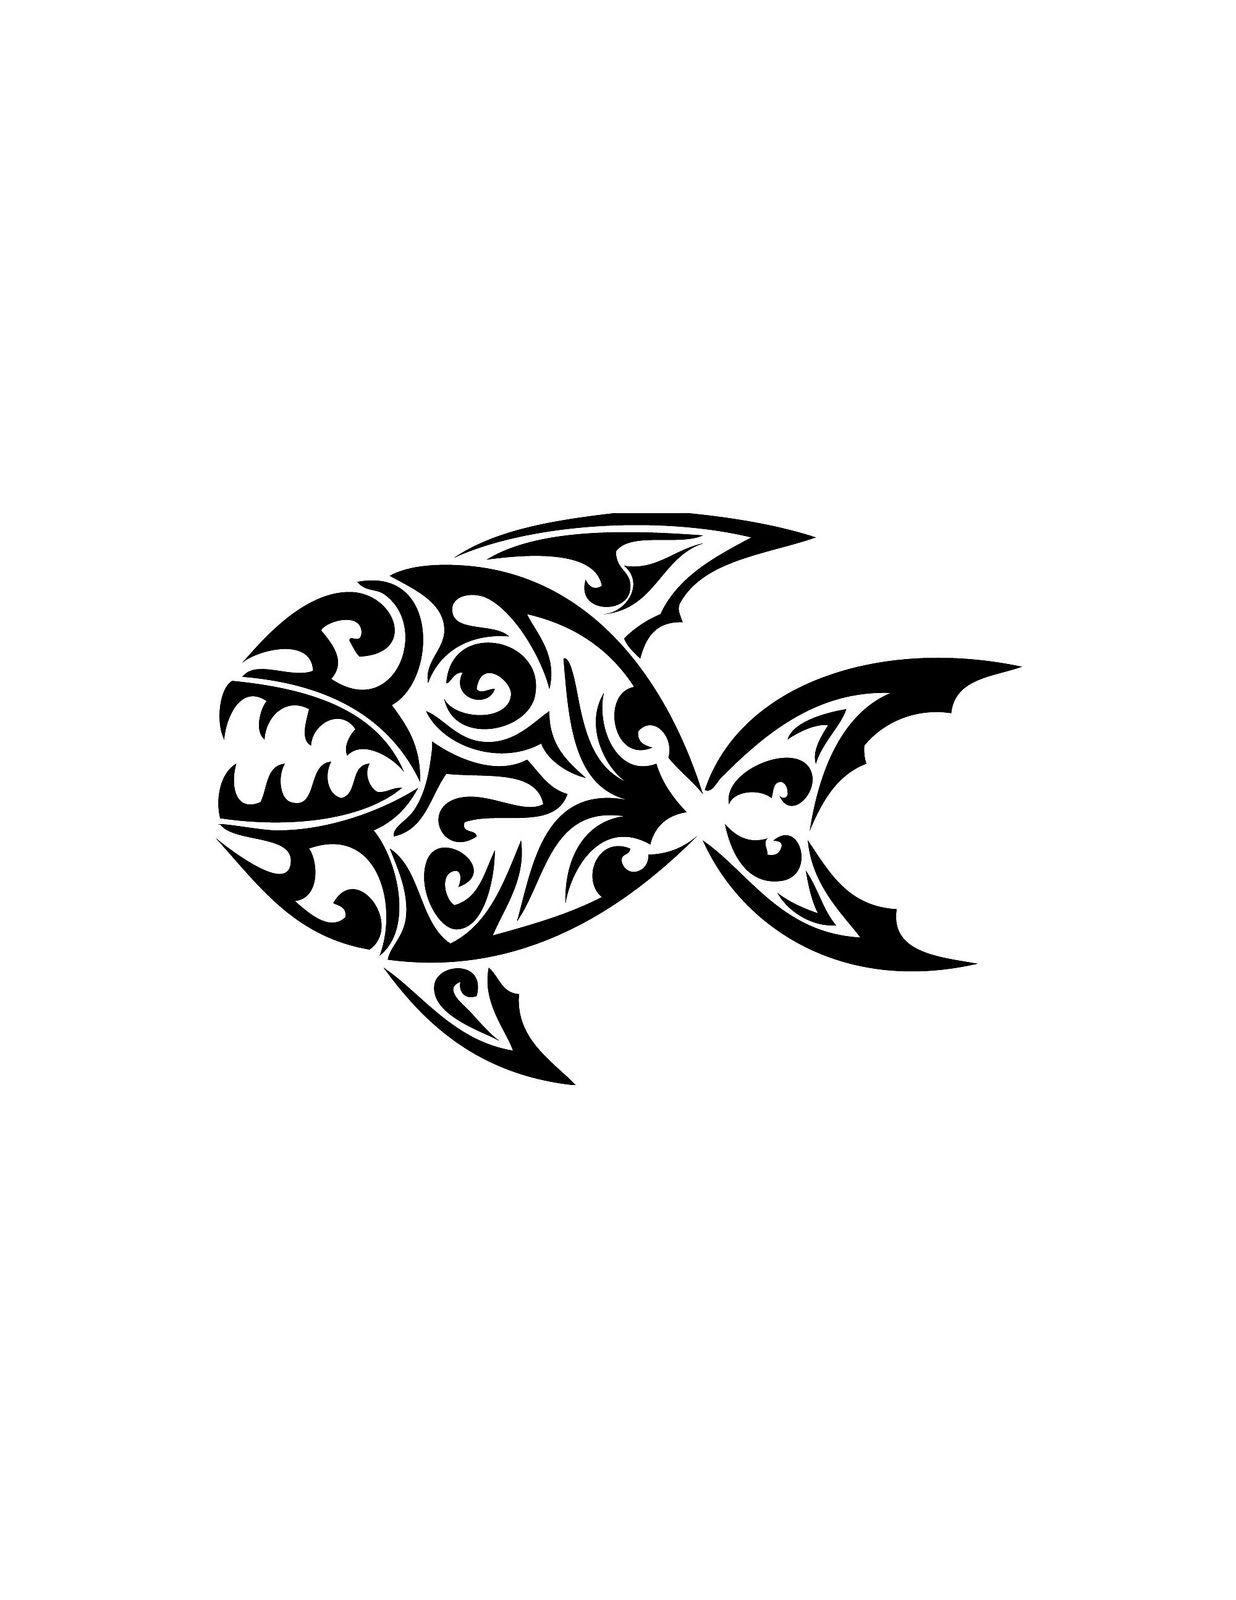 Tribal Koi Fish Tattoo Meaning Koi Fish Tattoo Meaning For